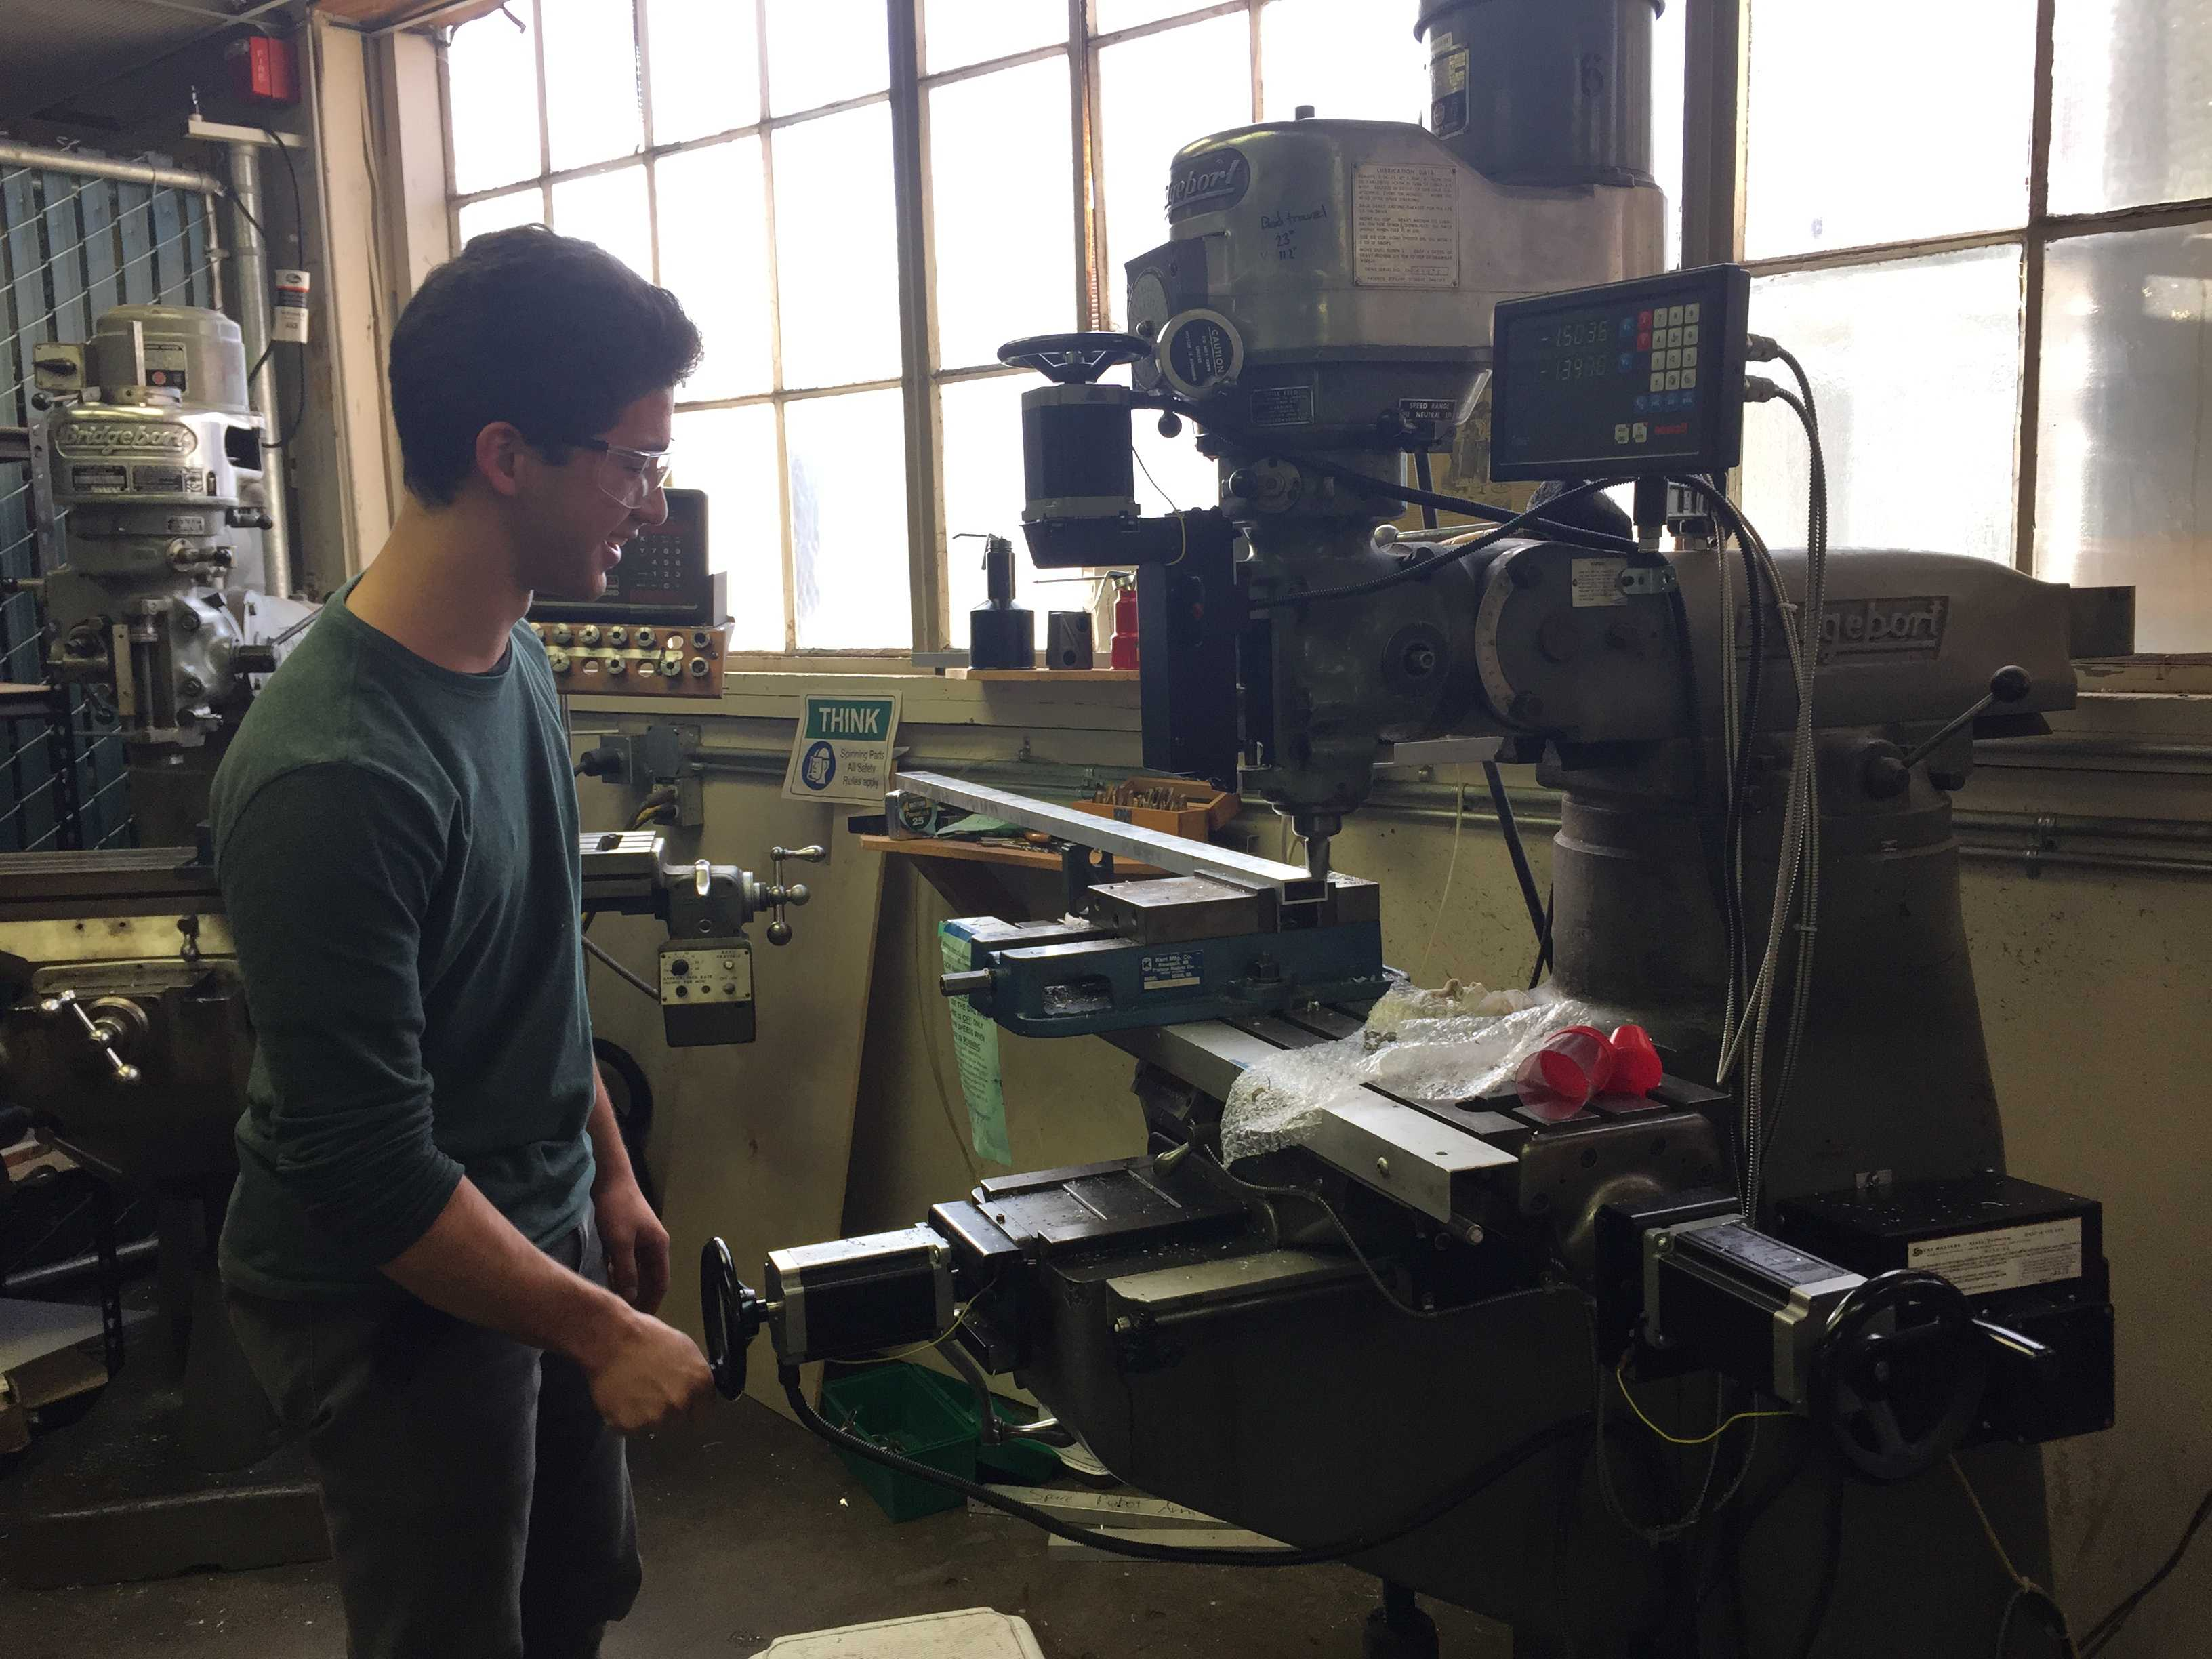 Senior Osamu Yasui uses a metal cutter to prepare parts for the robot. Photo by Dhara Yu.